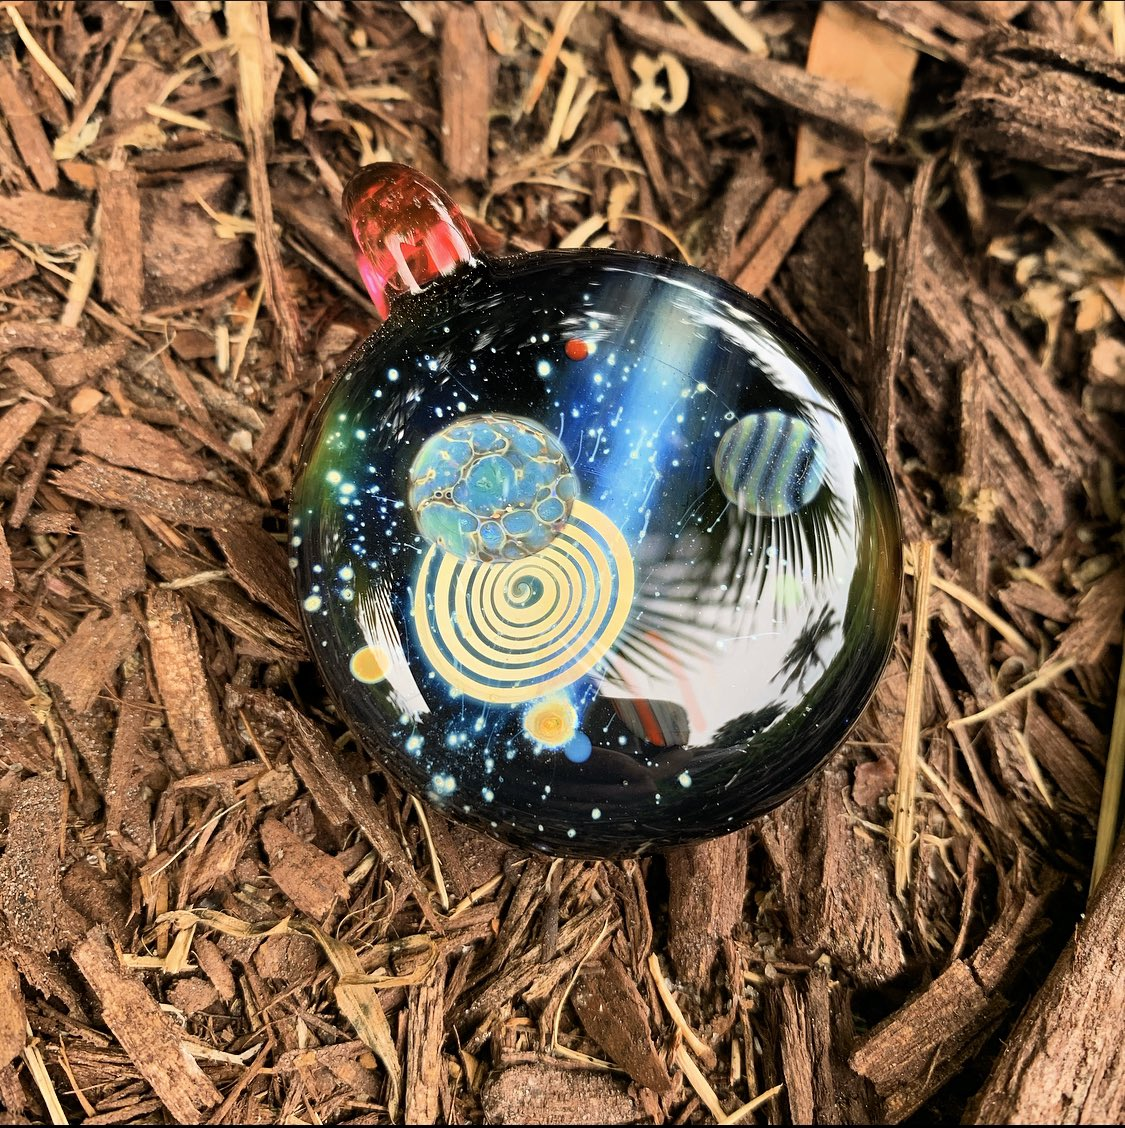 Available  dm to scoop #glass #art #space #spaceglass #pendant #heady #glassartpic.twitter.com/6bFeIHziKs